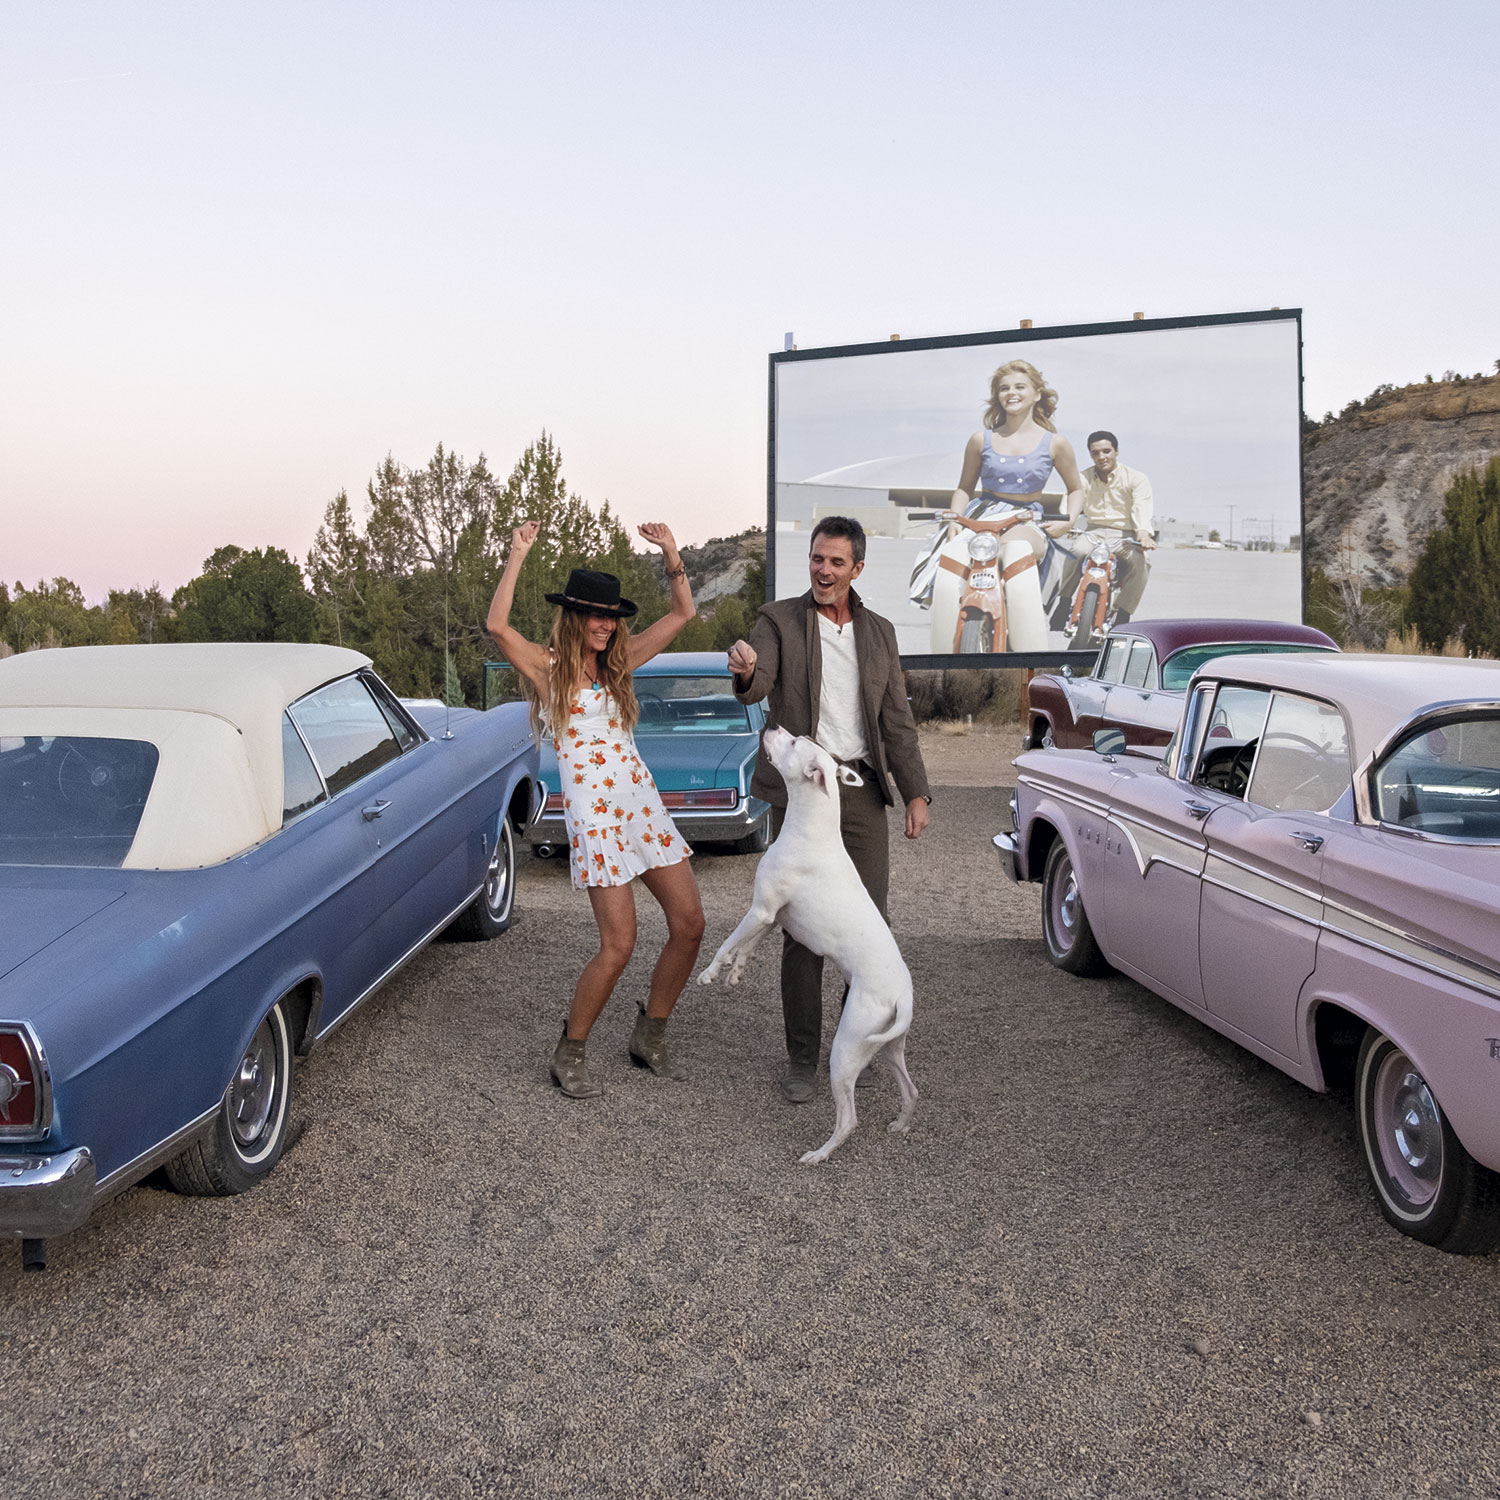 drive-in; Photo by Mirelle Inglefield; photo assistant: Eric Cox; Models: Phyllis Lane and David Dorn/Ford Robert Black Agency; Zema the Dog @zema_Dog